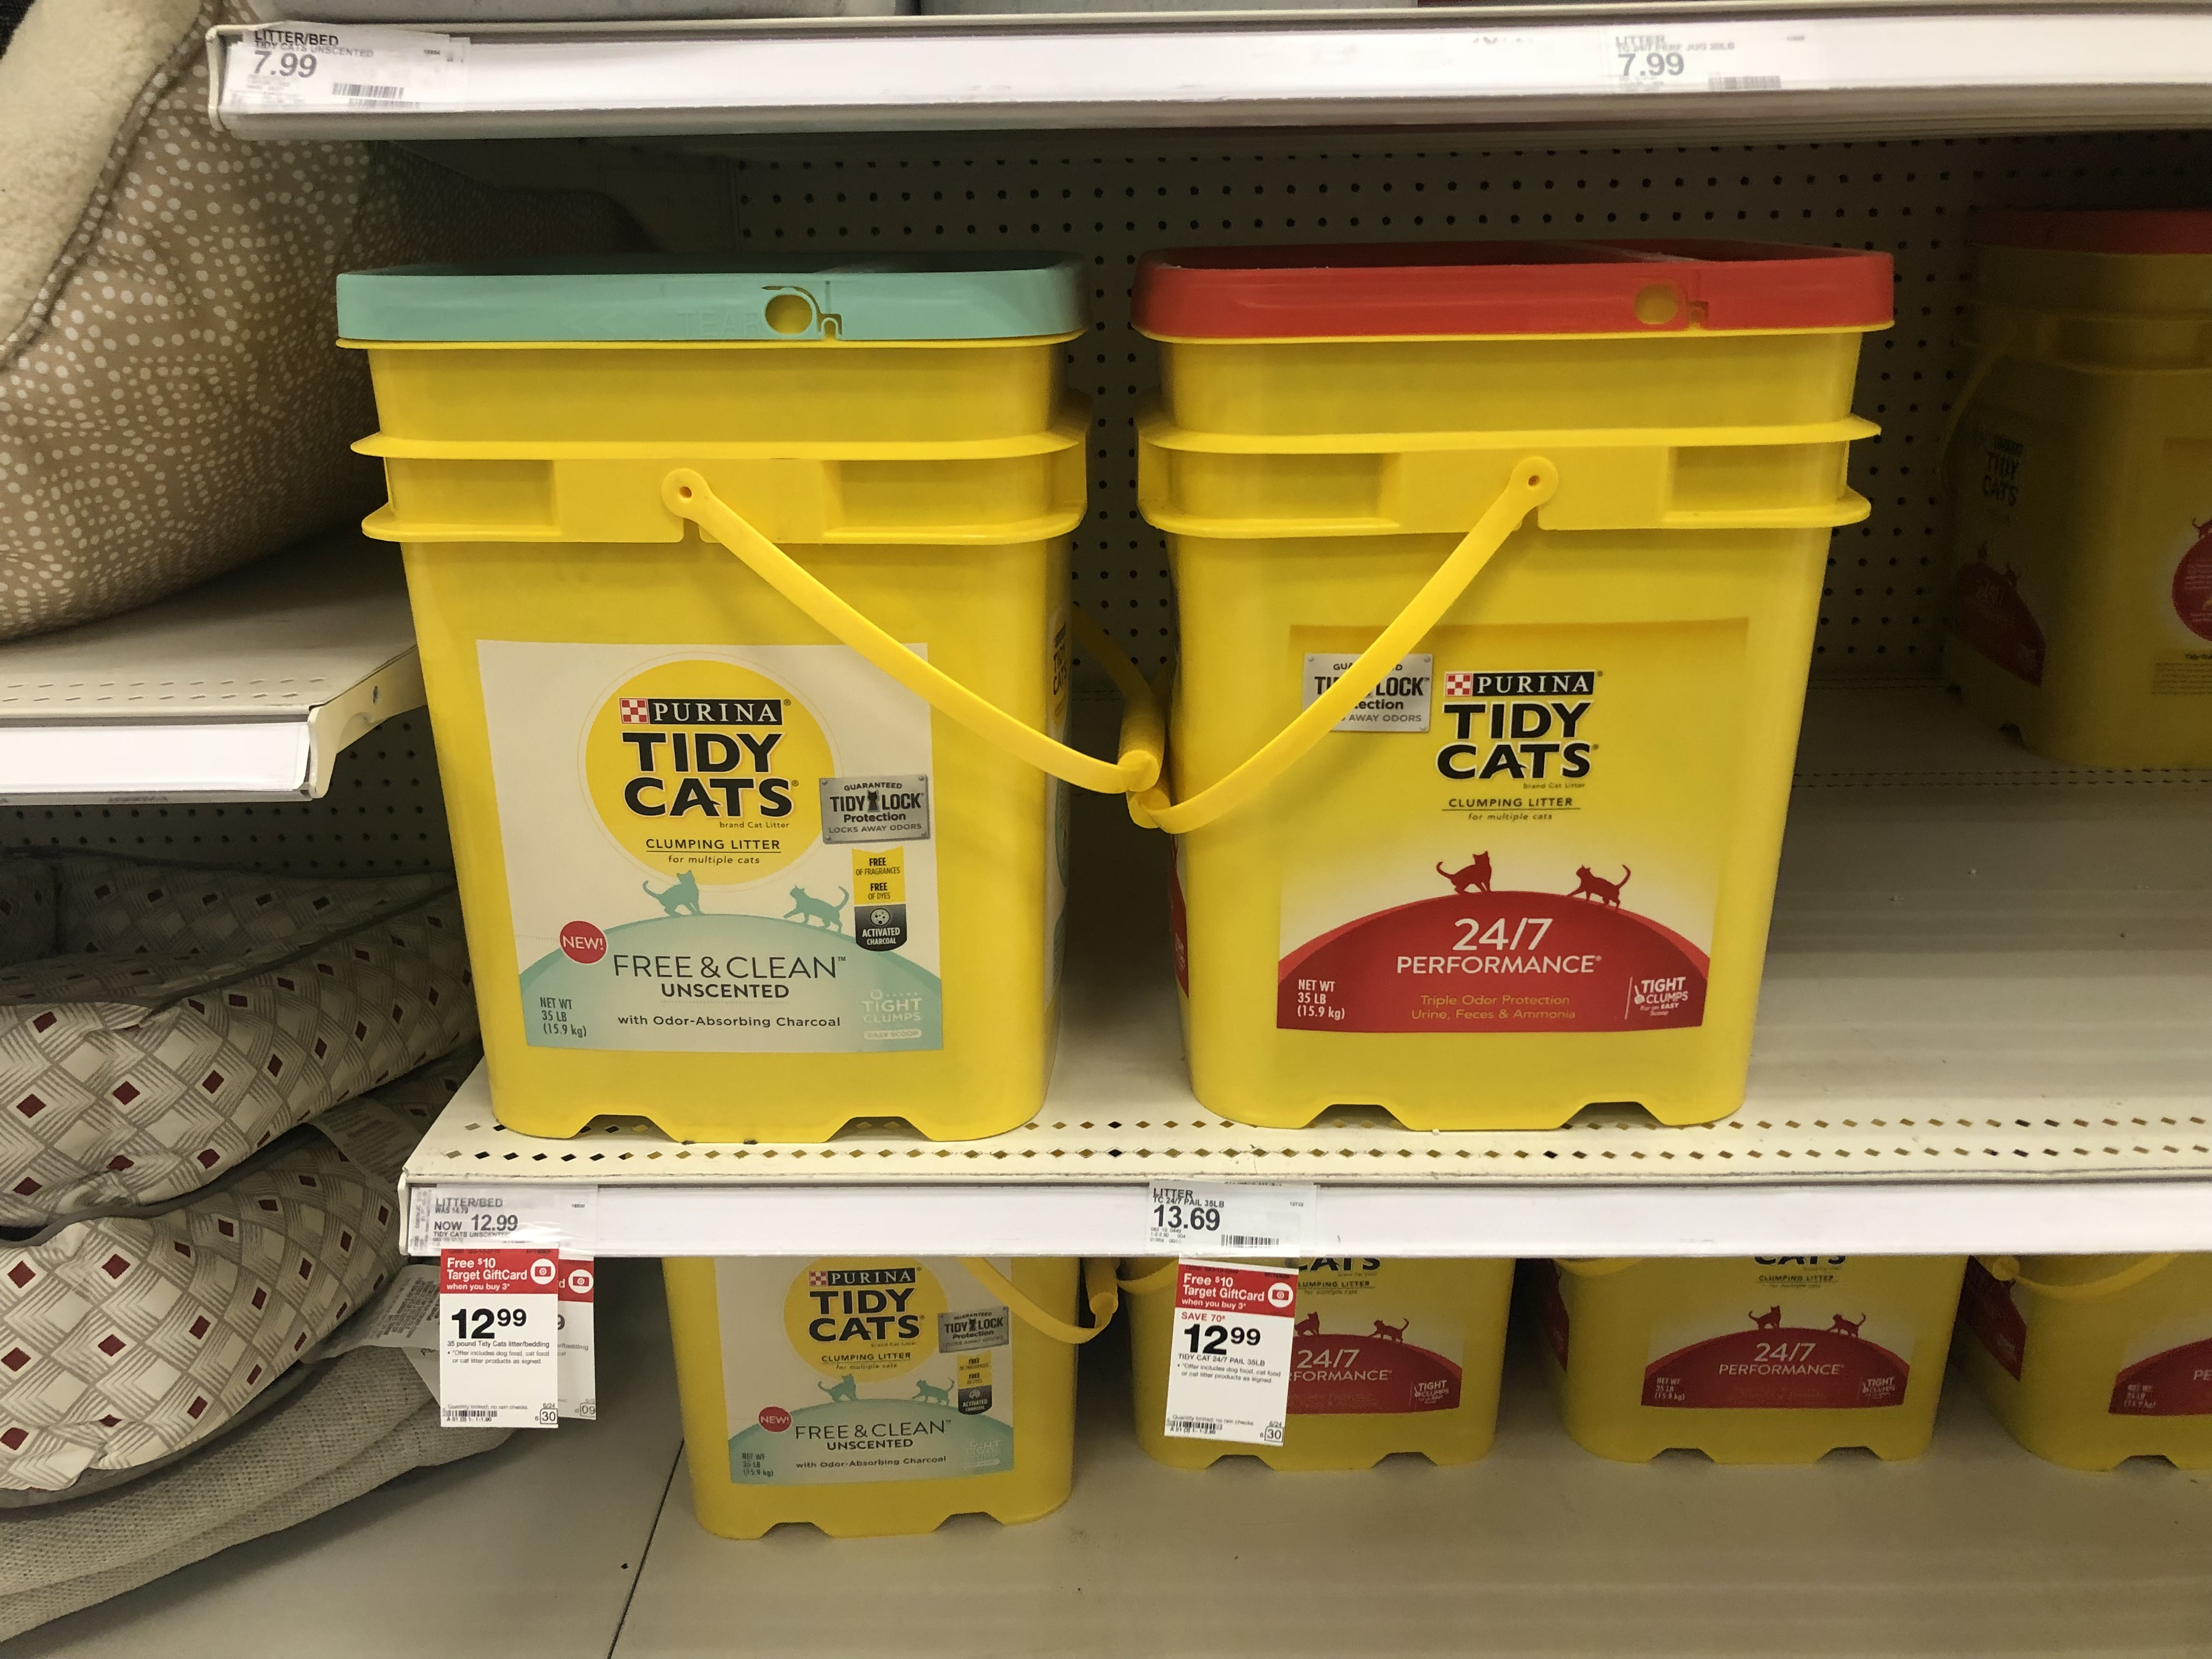 photograph about Tidy Cat Printable Coupons identified as $7 Relevance of Tidy Cats Coupon codes \u003d 35 Fat Cat Muddle Just